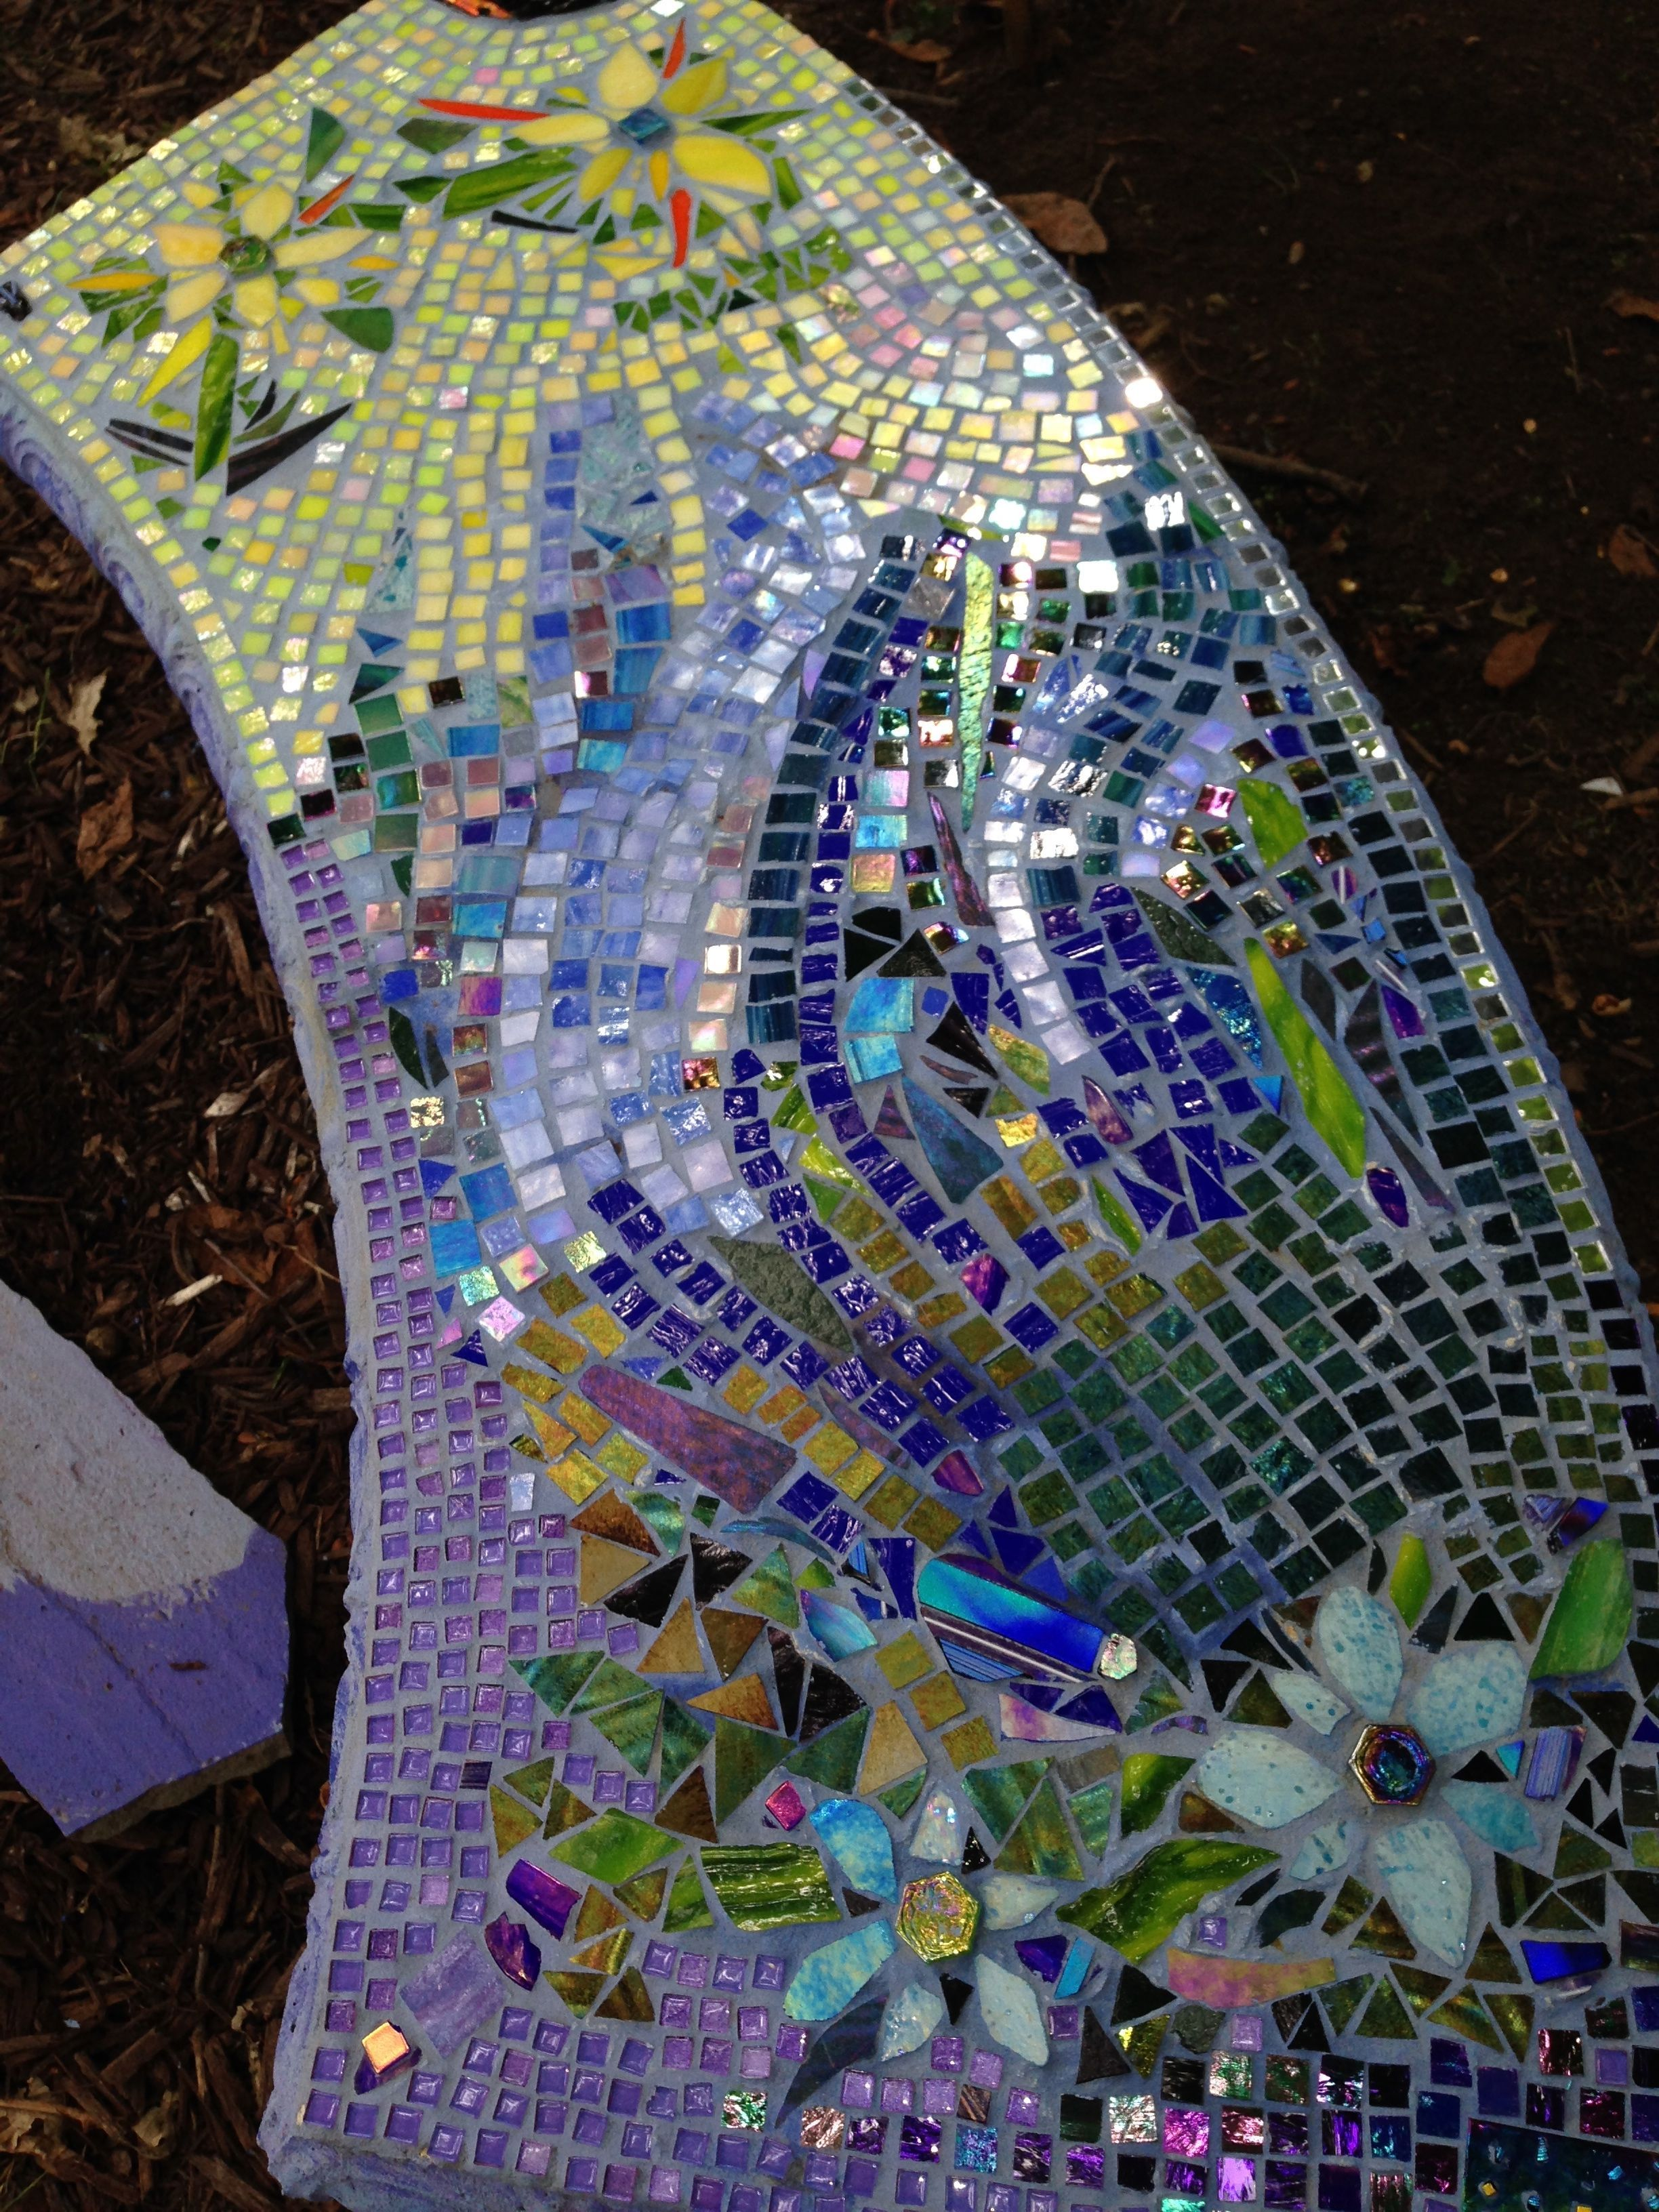 sun/moon mosaicked concrete garden bench using scrap glass and